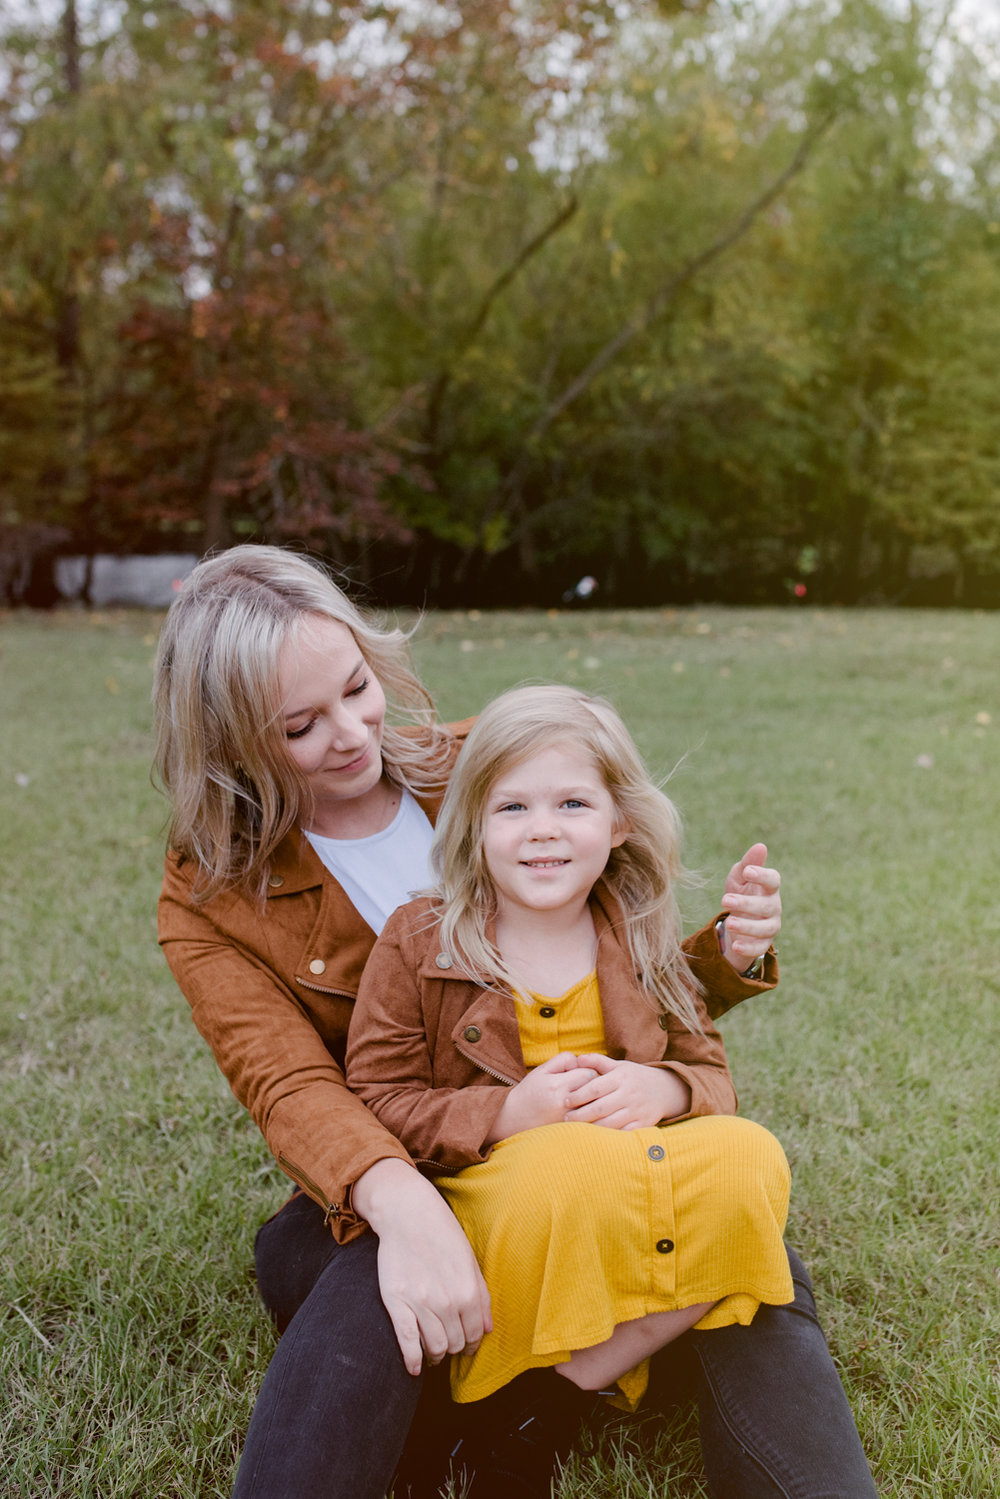 leeannandsidalee-motherdaughtersession-minisessions-familysessions-portraits-loscastrophotography-1.jpg